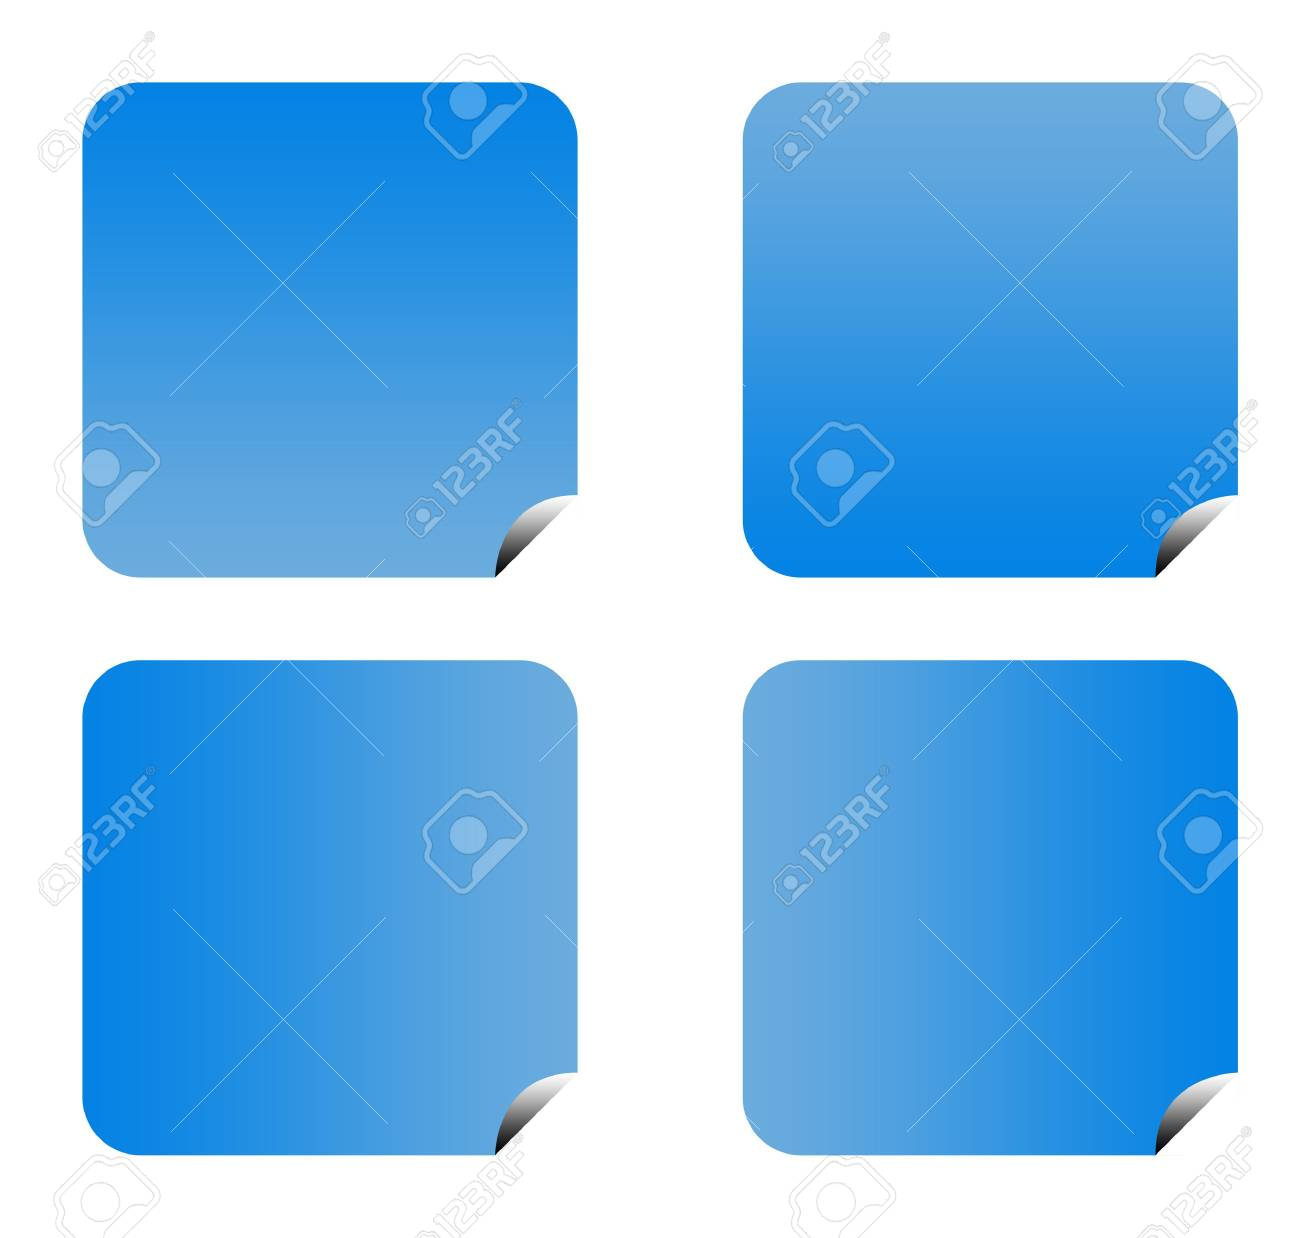 Blue gradient buttons with copy space isolated on white background. Stock Photo - 6779088